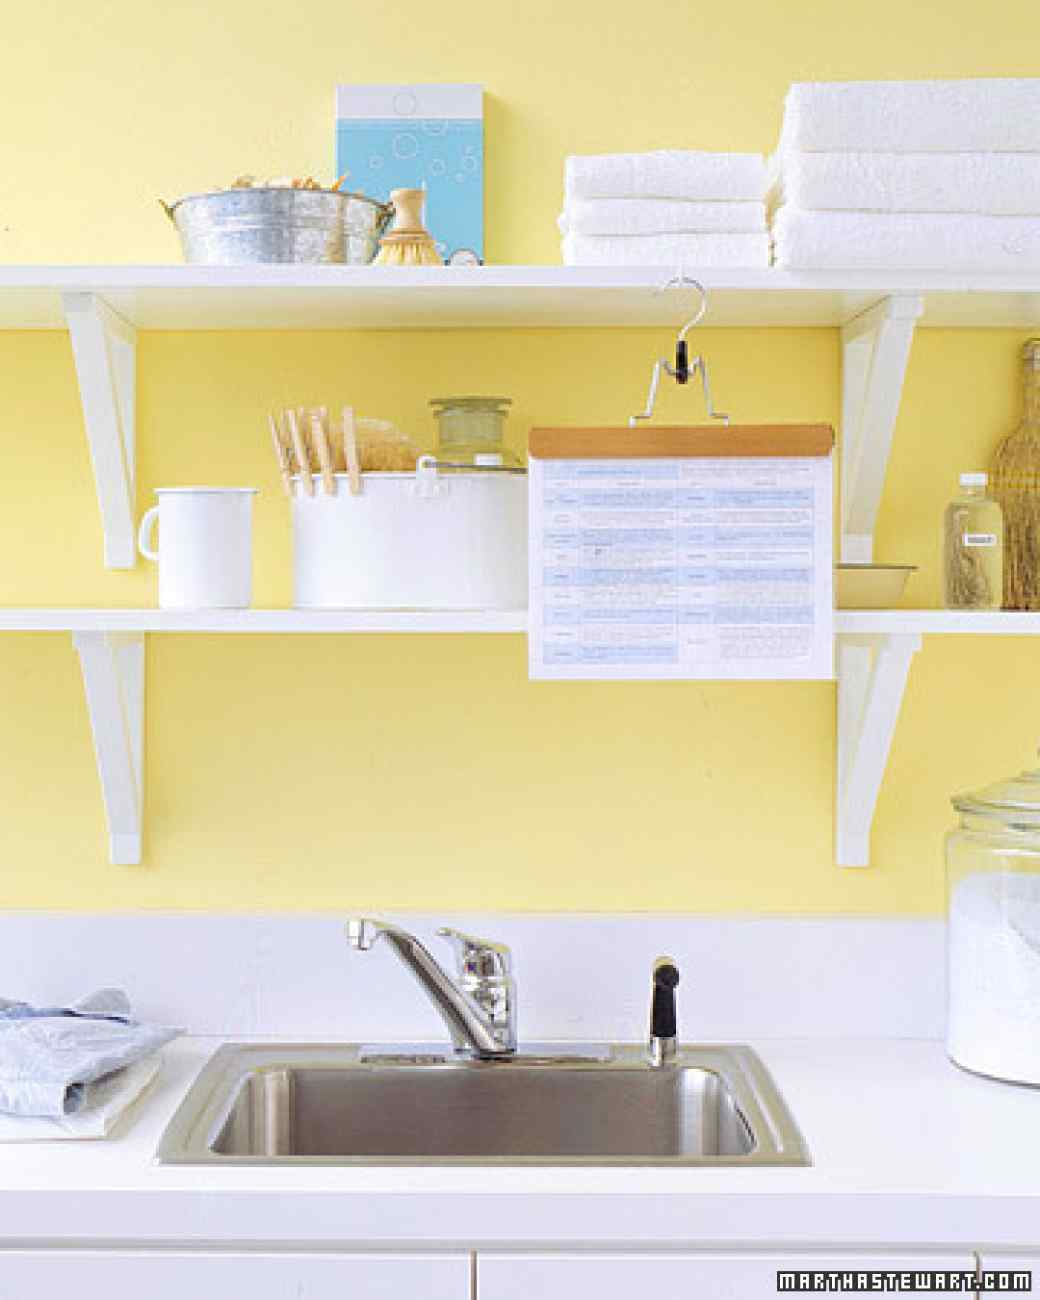 12-things-to-do-before-washing